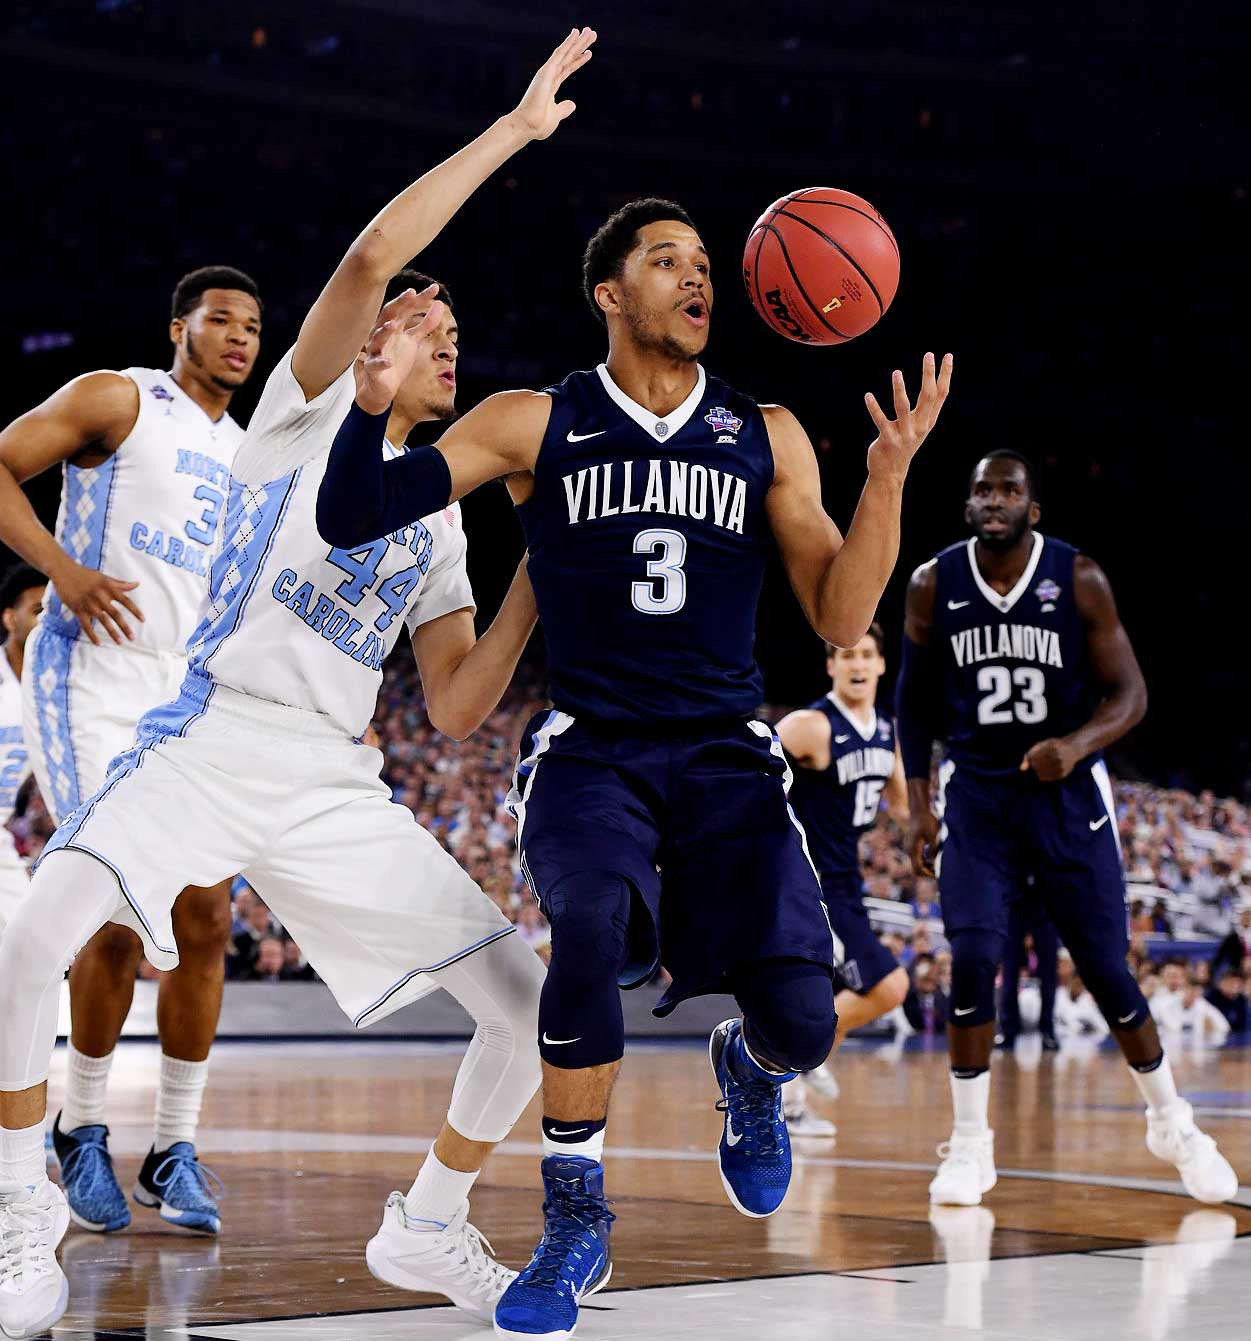 Josh Hart keeps his eye on the ball as Villanova improved its record to 35-5, capped by a national title.